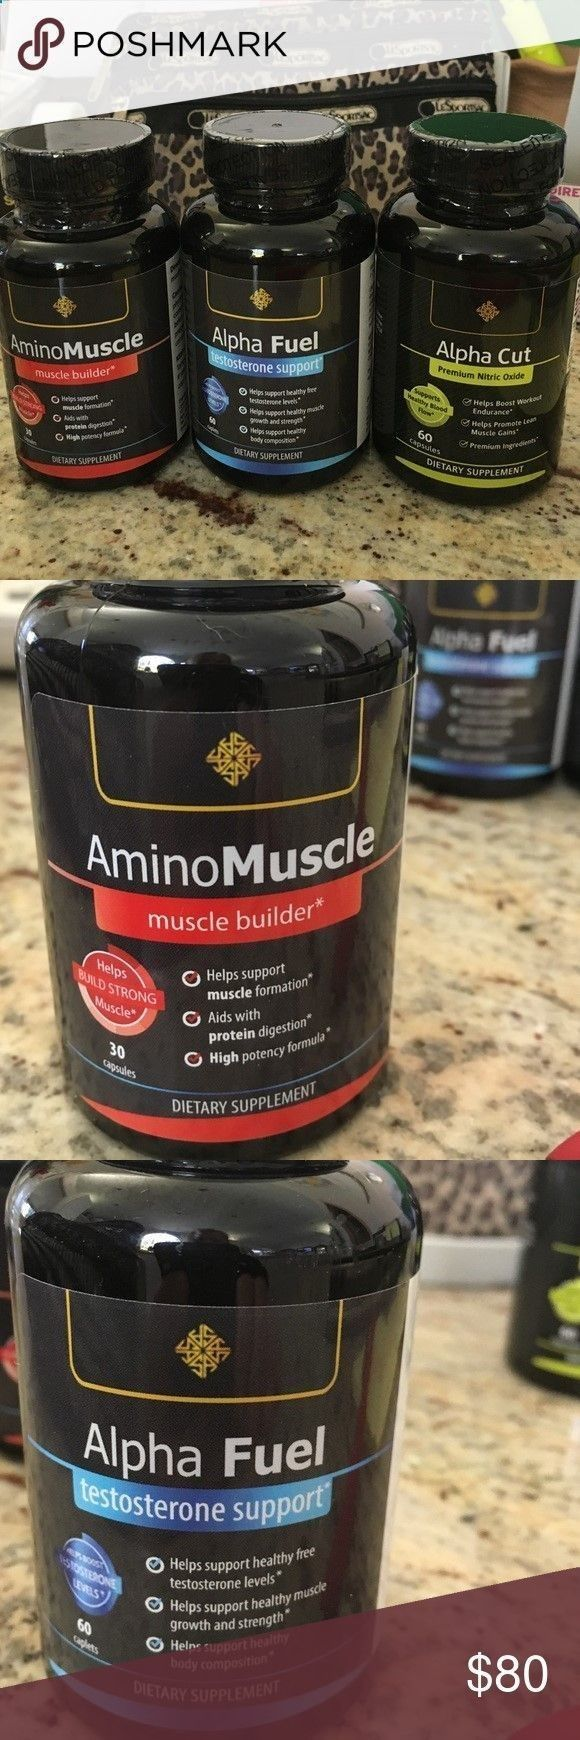 Mens vitamins alpha cut, amino muscle, alpha fuel 3 bottles purchased for $198 and never needed. Great for men who work out. Helps boost workout endurance helps promote lean muscle gains. Helps support healthy free testosterone levels, muscle growth and strength, muscle formation and healthy muscle growth and strength. Just purchased. If u want to reorder after u purchase these and decide u like them the number is on the bottle. Alpha cut, fuel, and aminomuscle Other